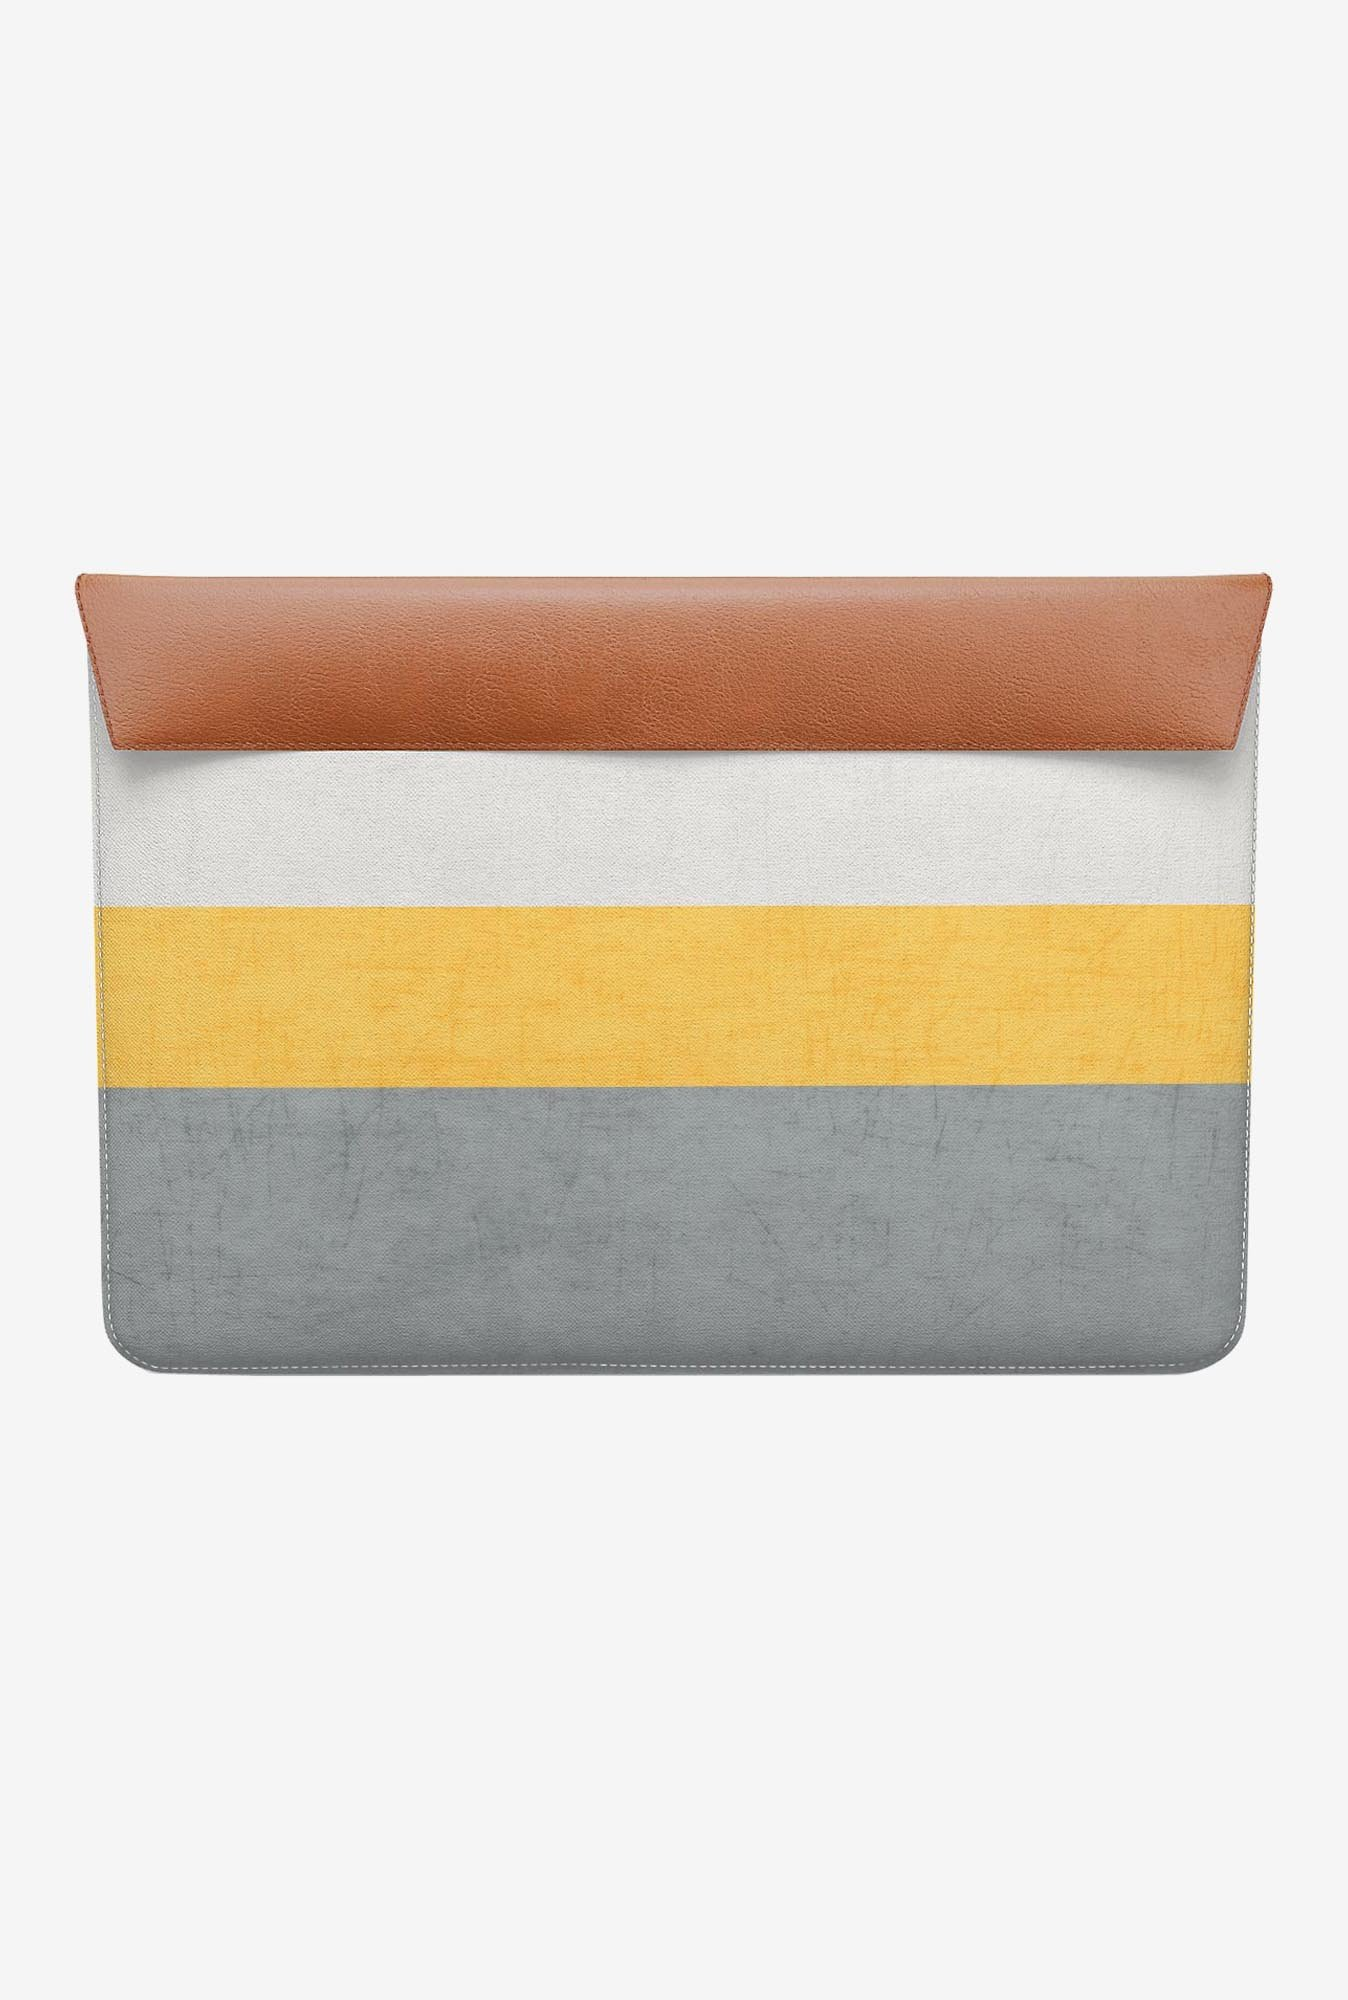 DailyObjects Summer Time MacBook Air 11 Envelope Sleeve